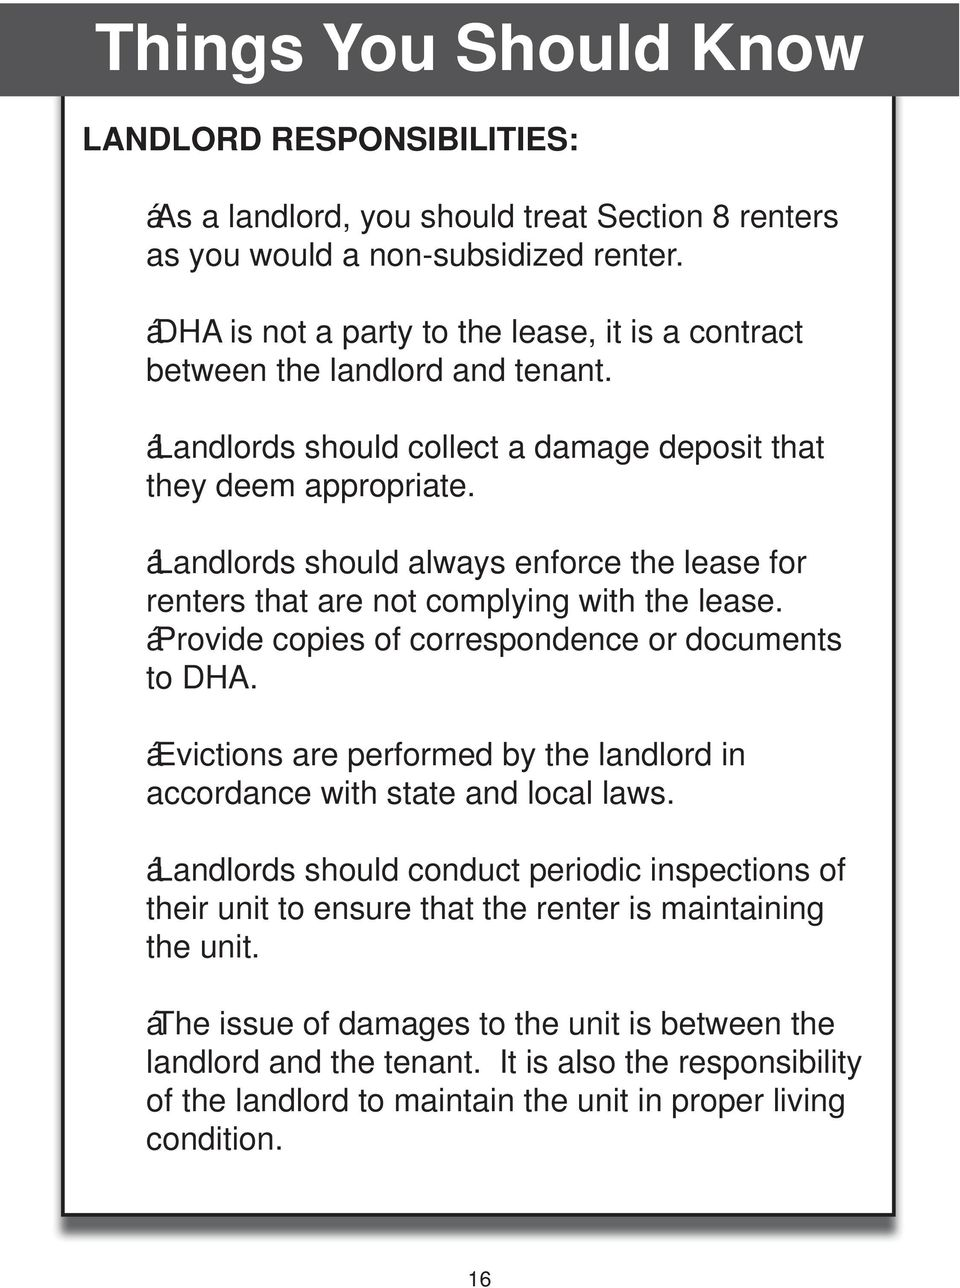 á Landlords should always enforce the lease for renters that are not complying with the lease. á Provide copies of correspondence or documents to DHA.